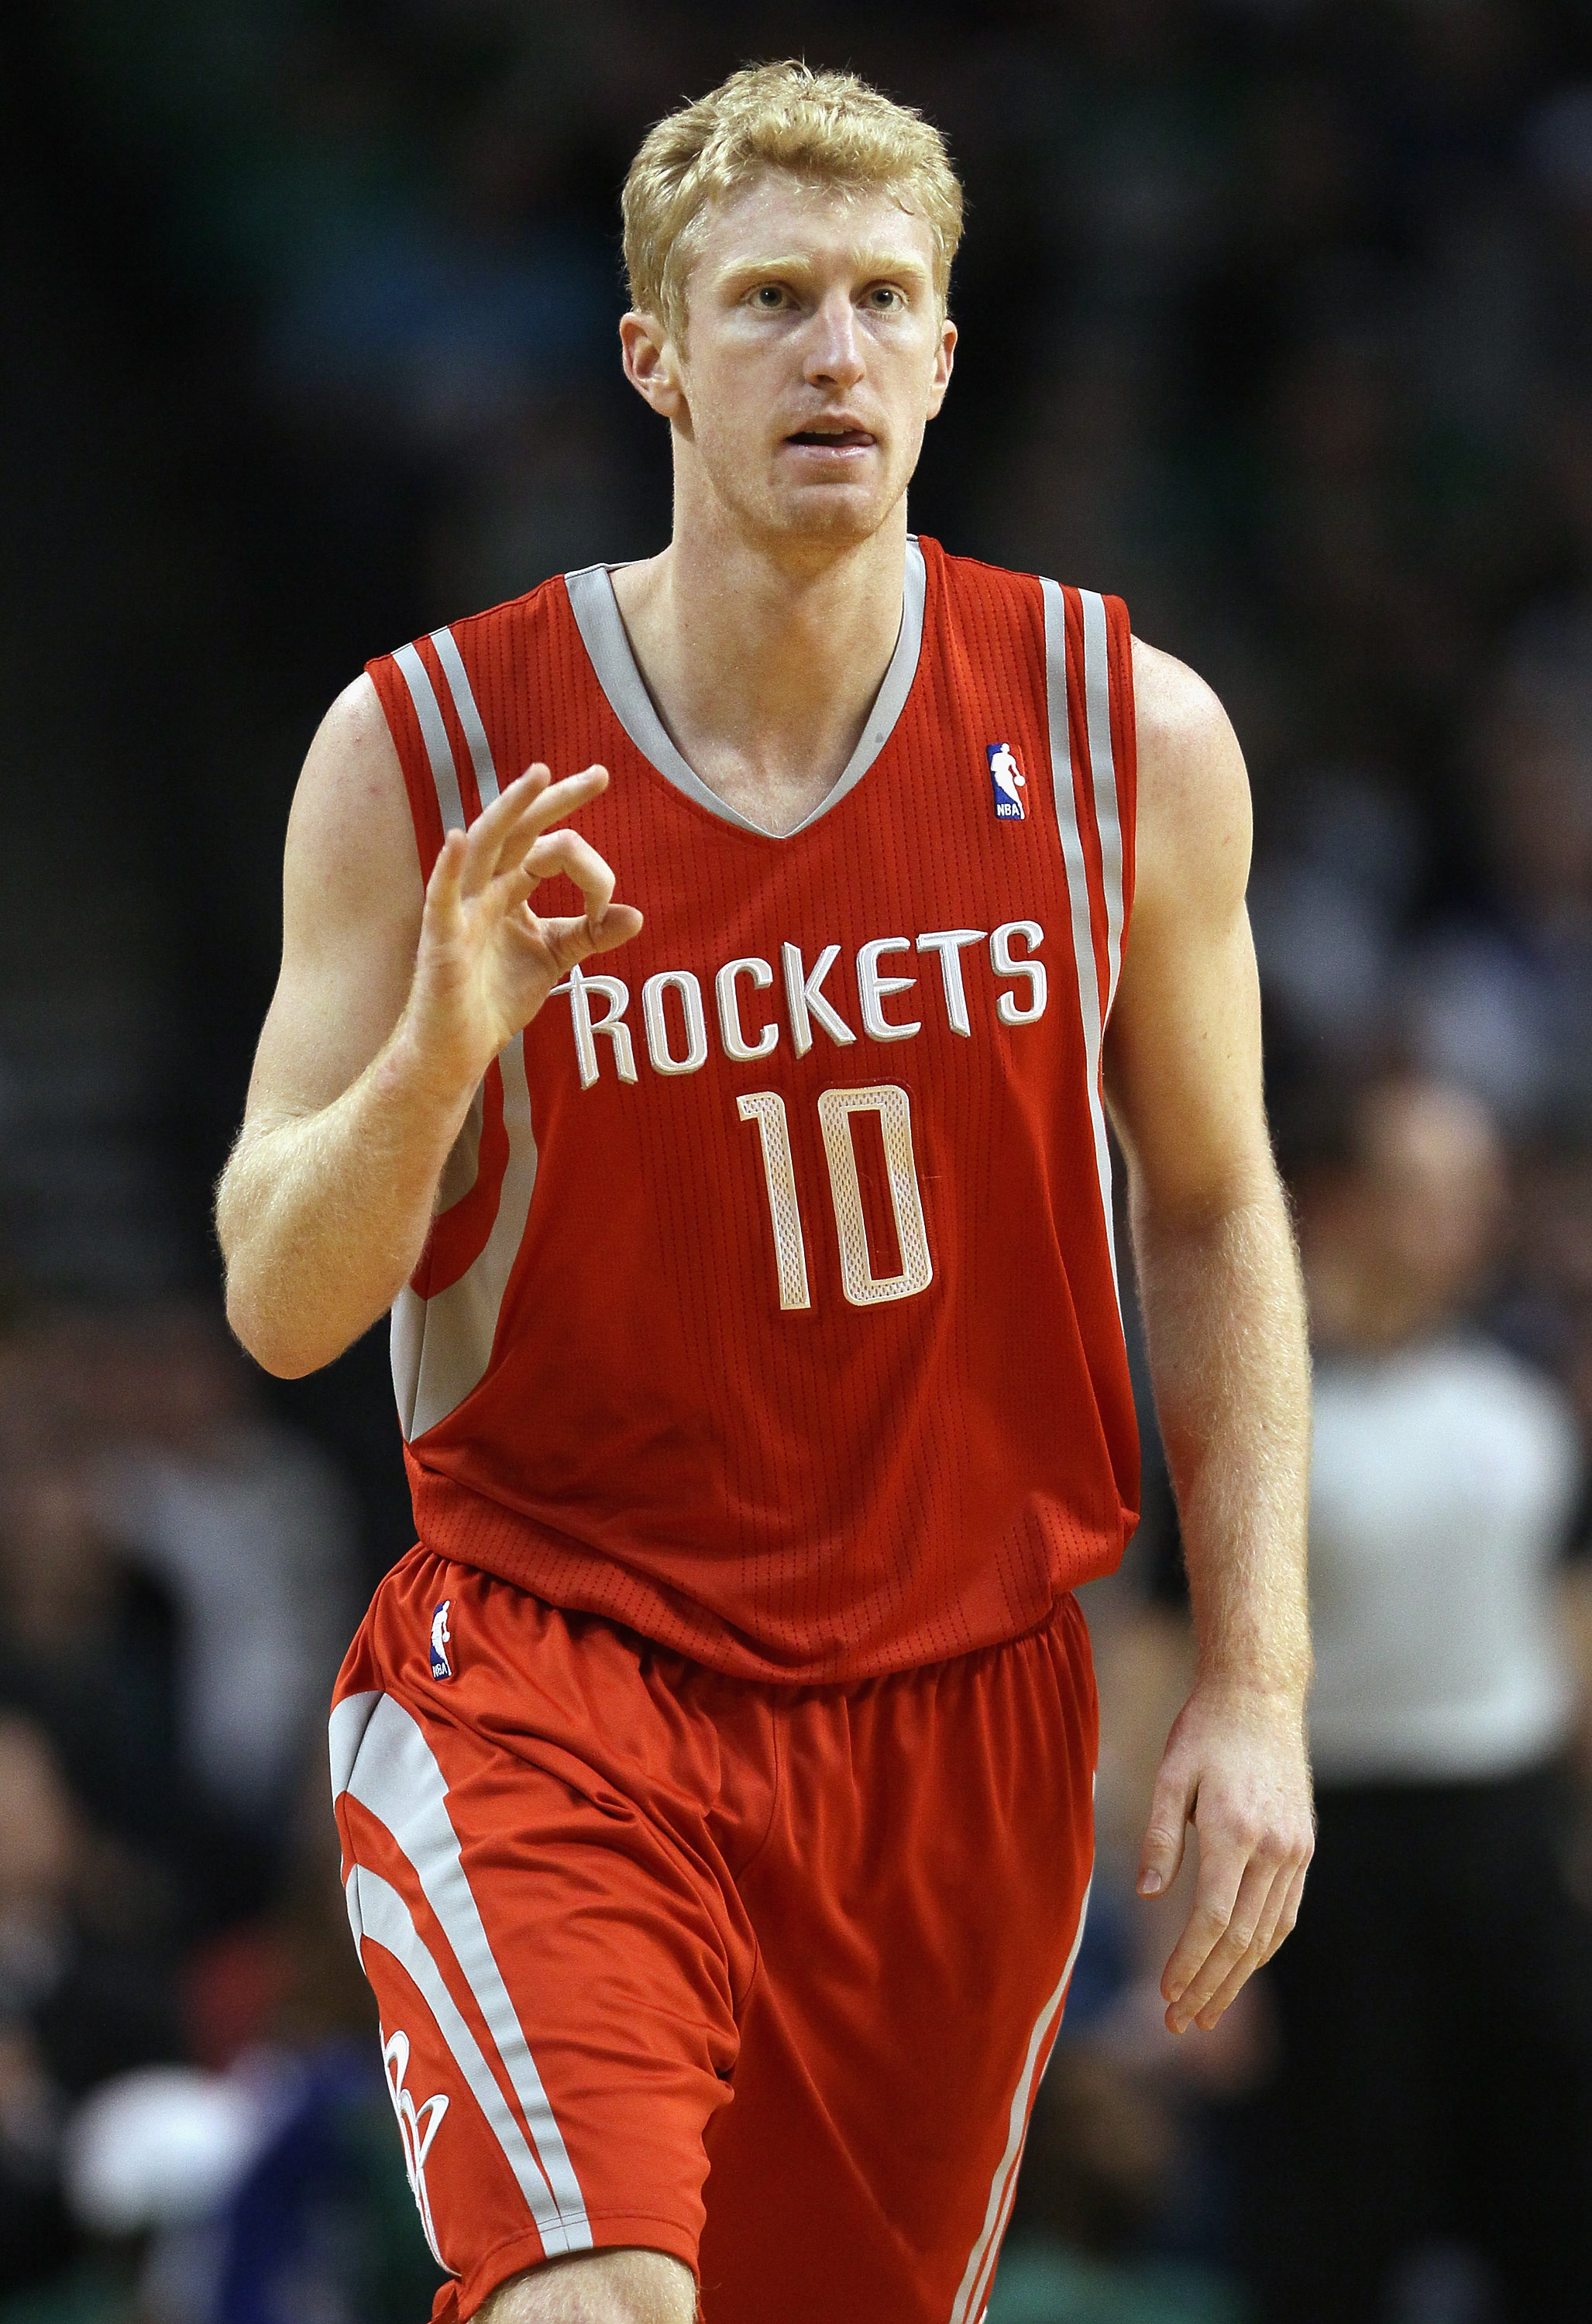 BOSTON, MA - JANUARY 10:  Chase Budinger #10 of the Houston Rockets celebrates his three point shot in the first half against the Boston Celtics on January 10, 2011 at the TD Garden in Boston, Massachusetts.  NOTE TO USER: User expressly acknowledges and